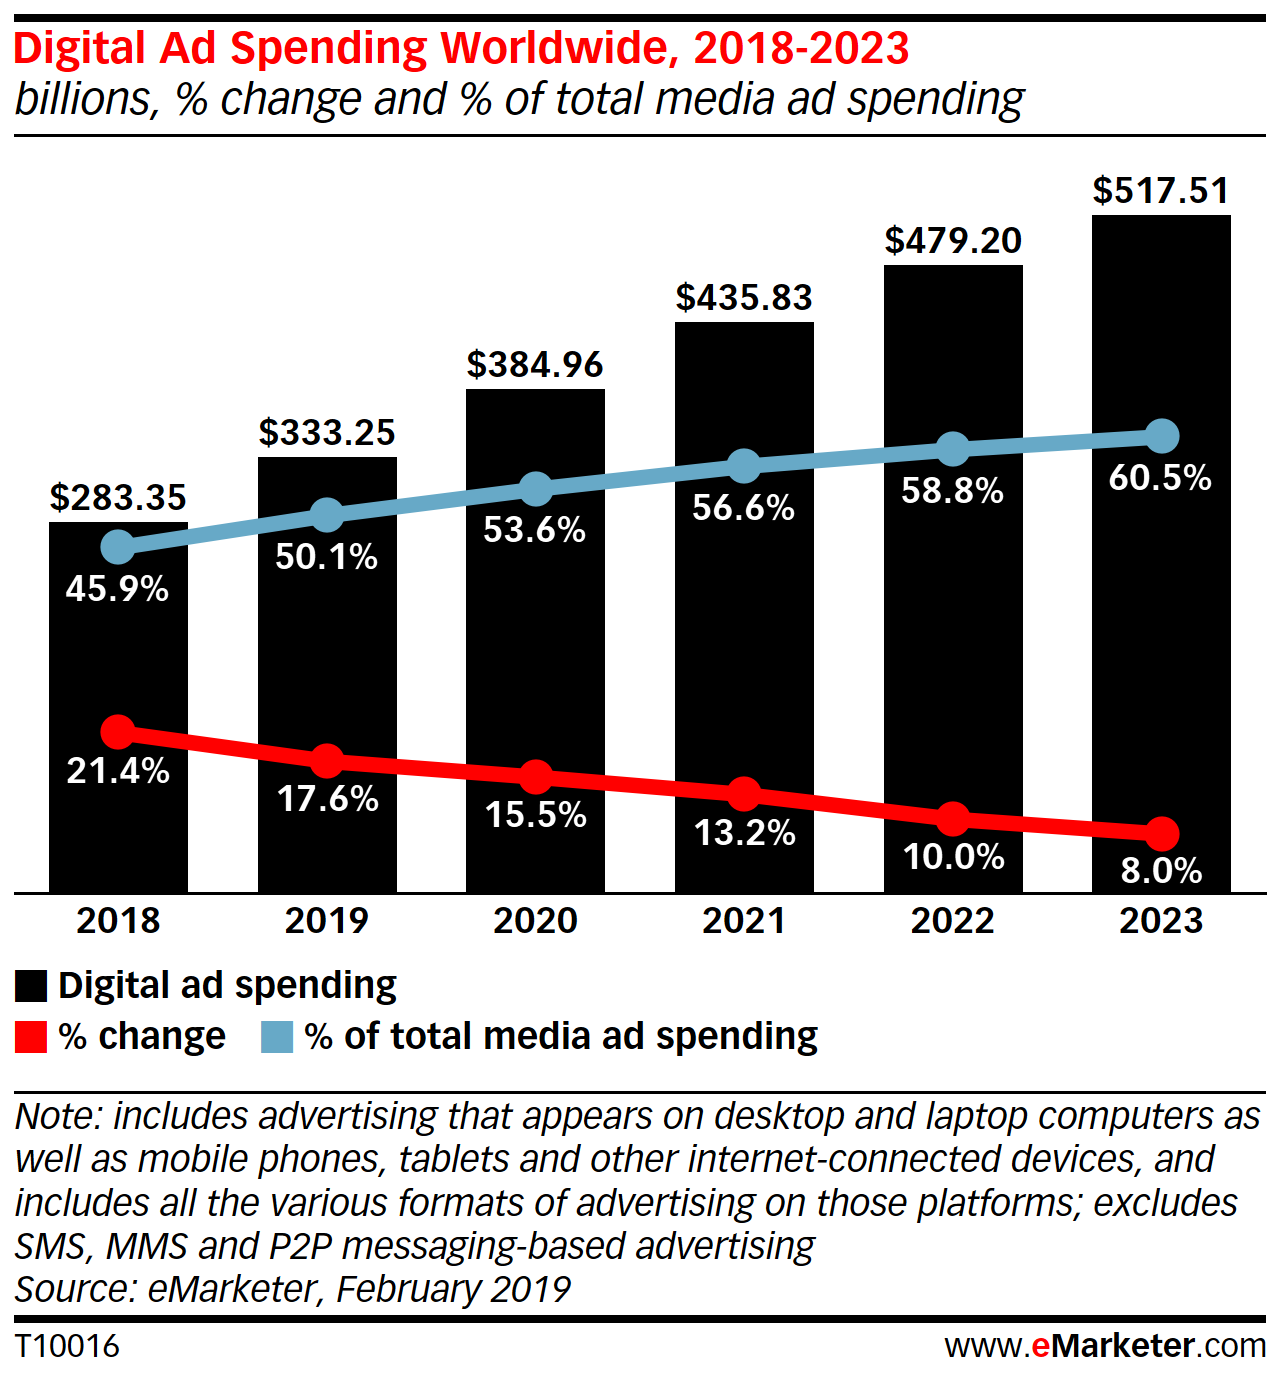 Research: Digital ad spending continues to grow globally